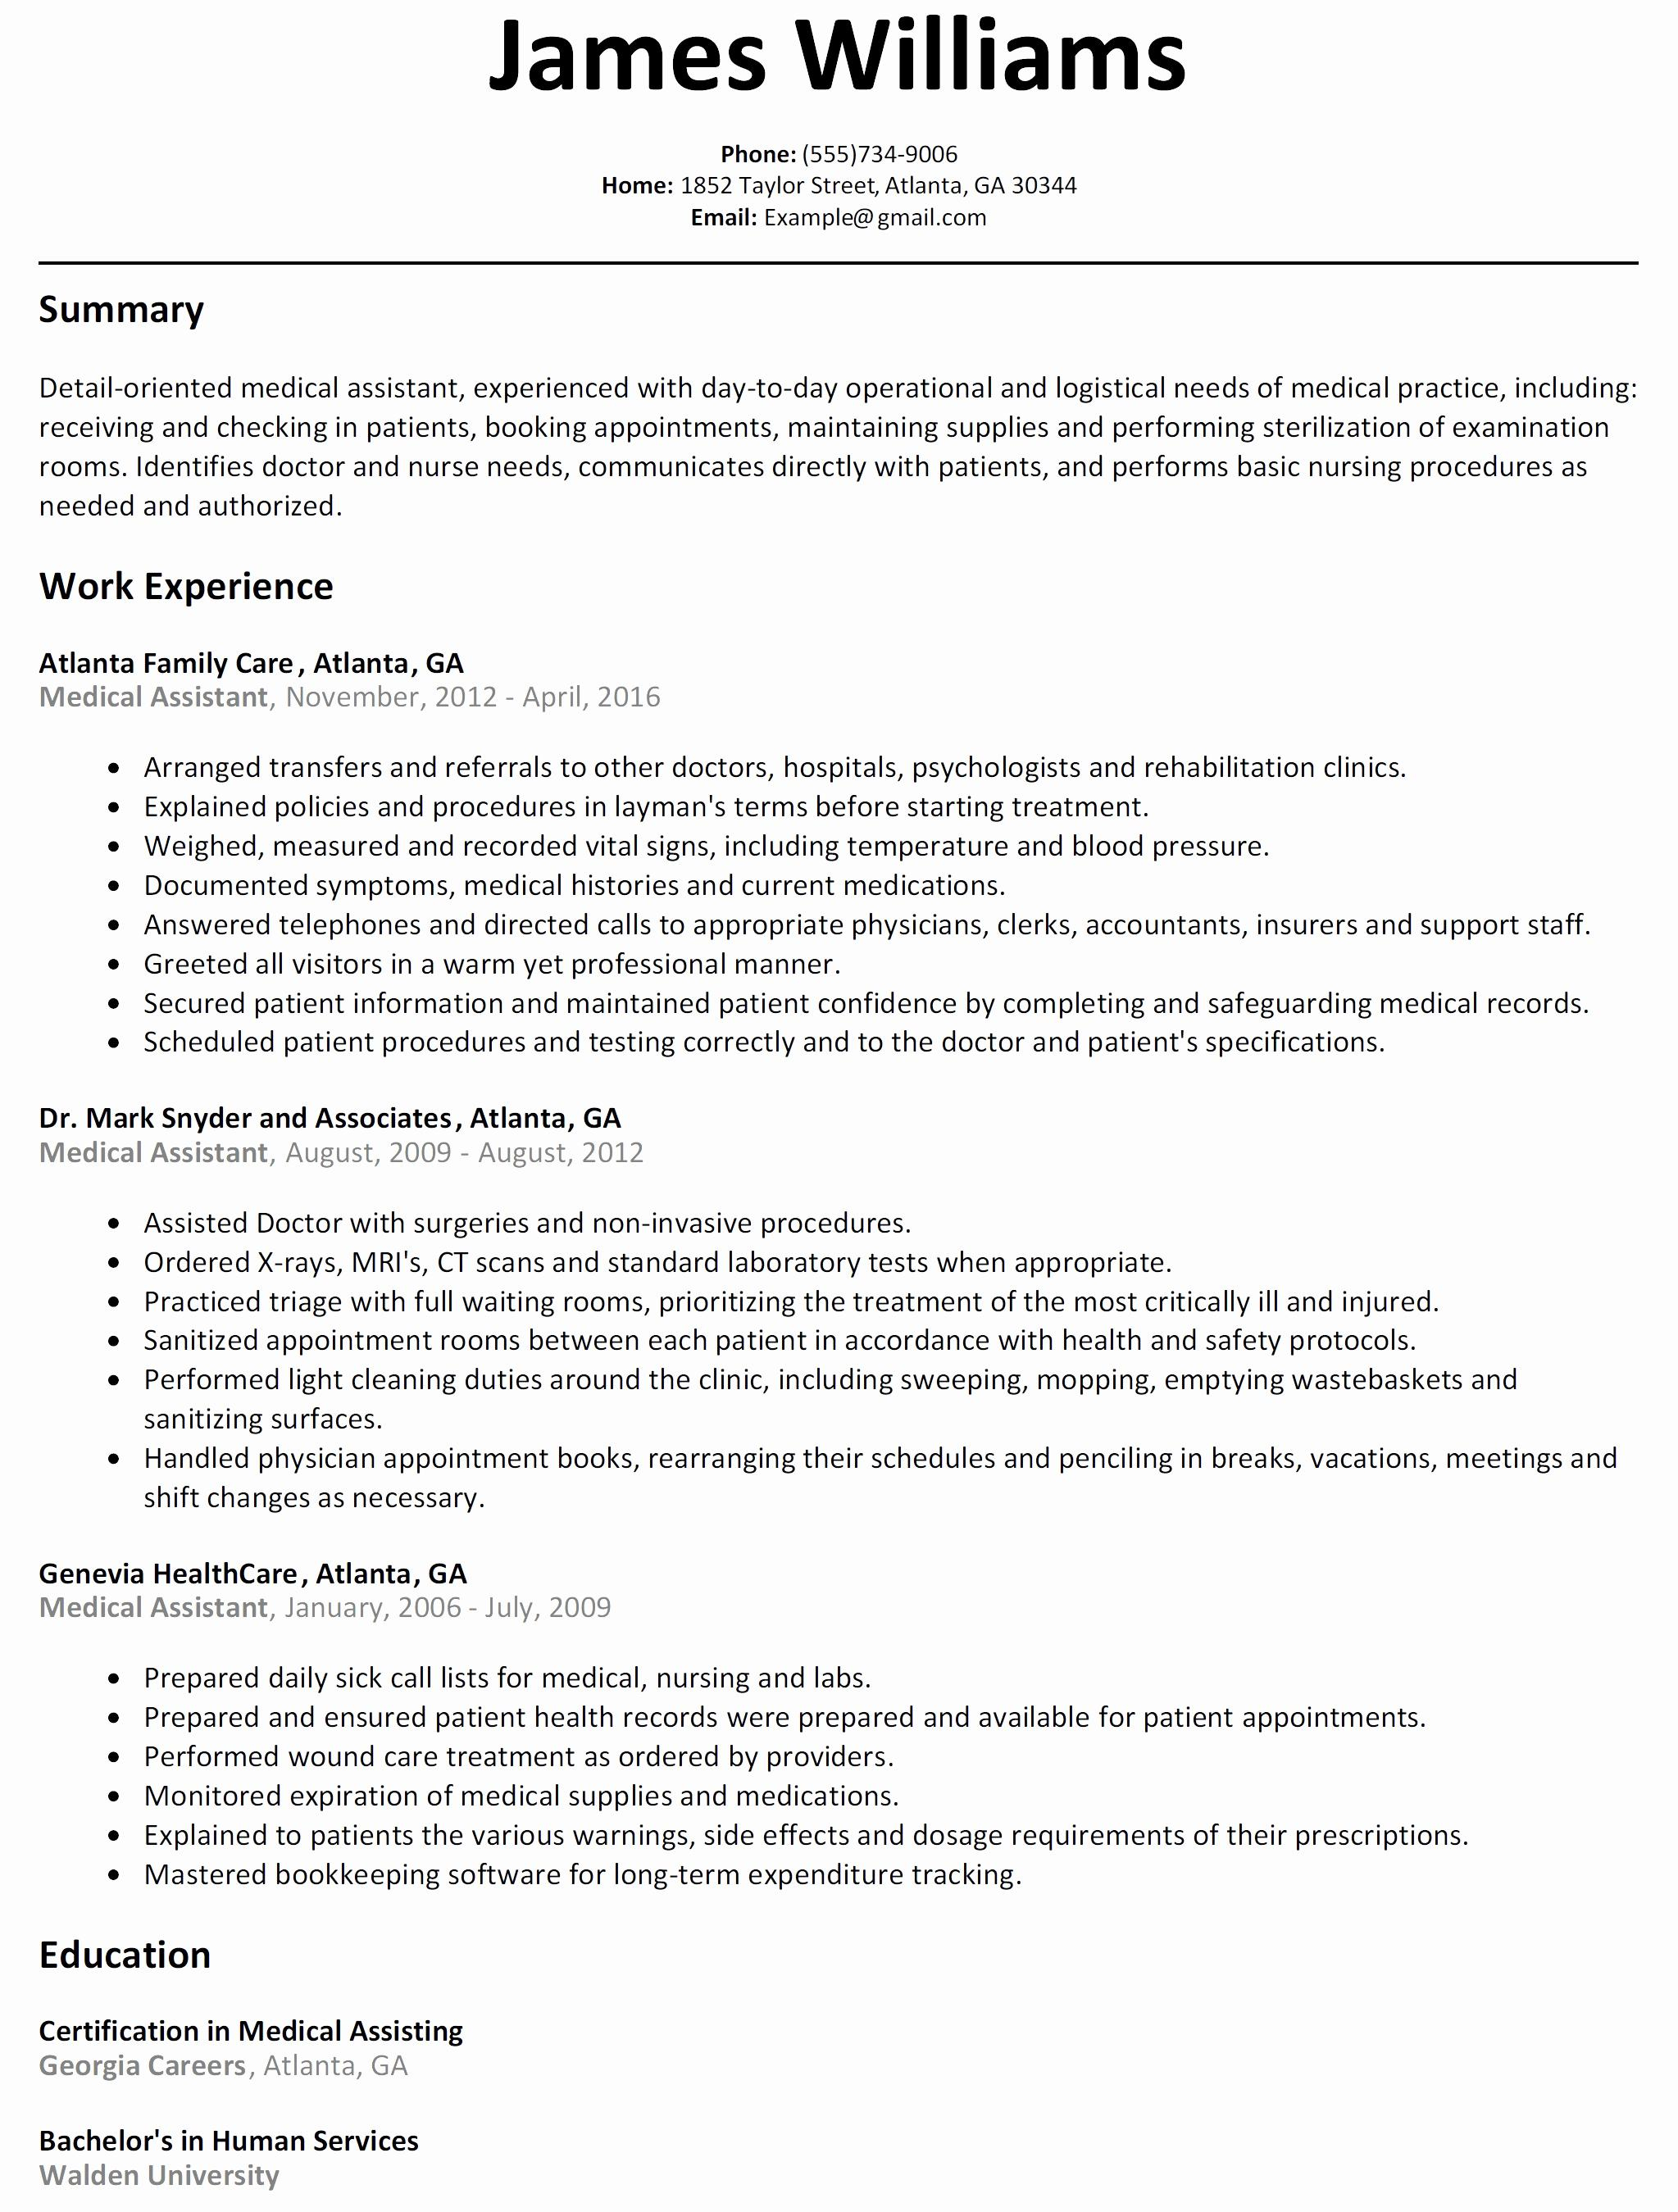 Word Resume Template Free - Resume Template Free Word Beautiful Best Resume Templates Word New